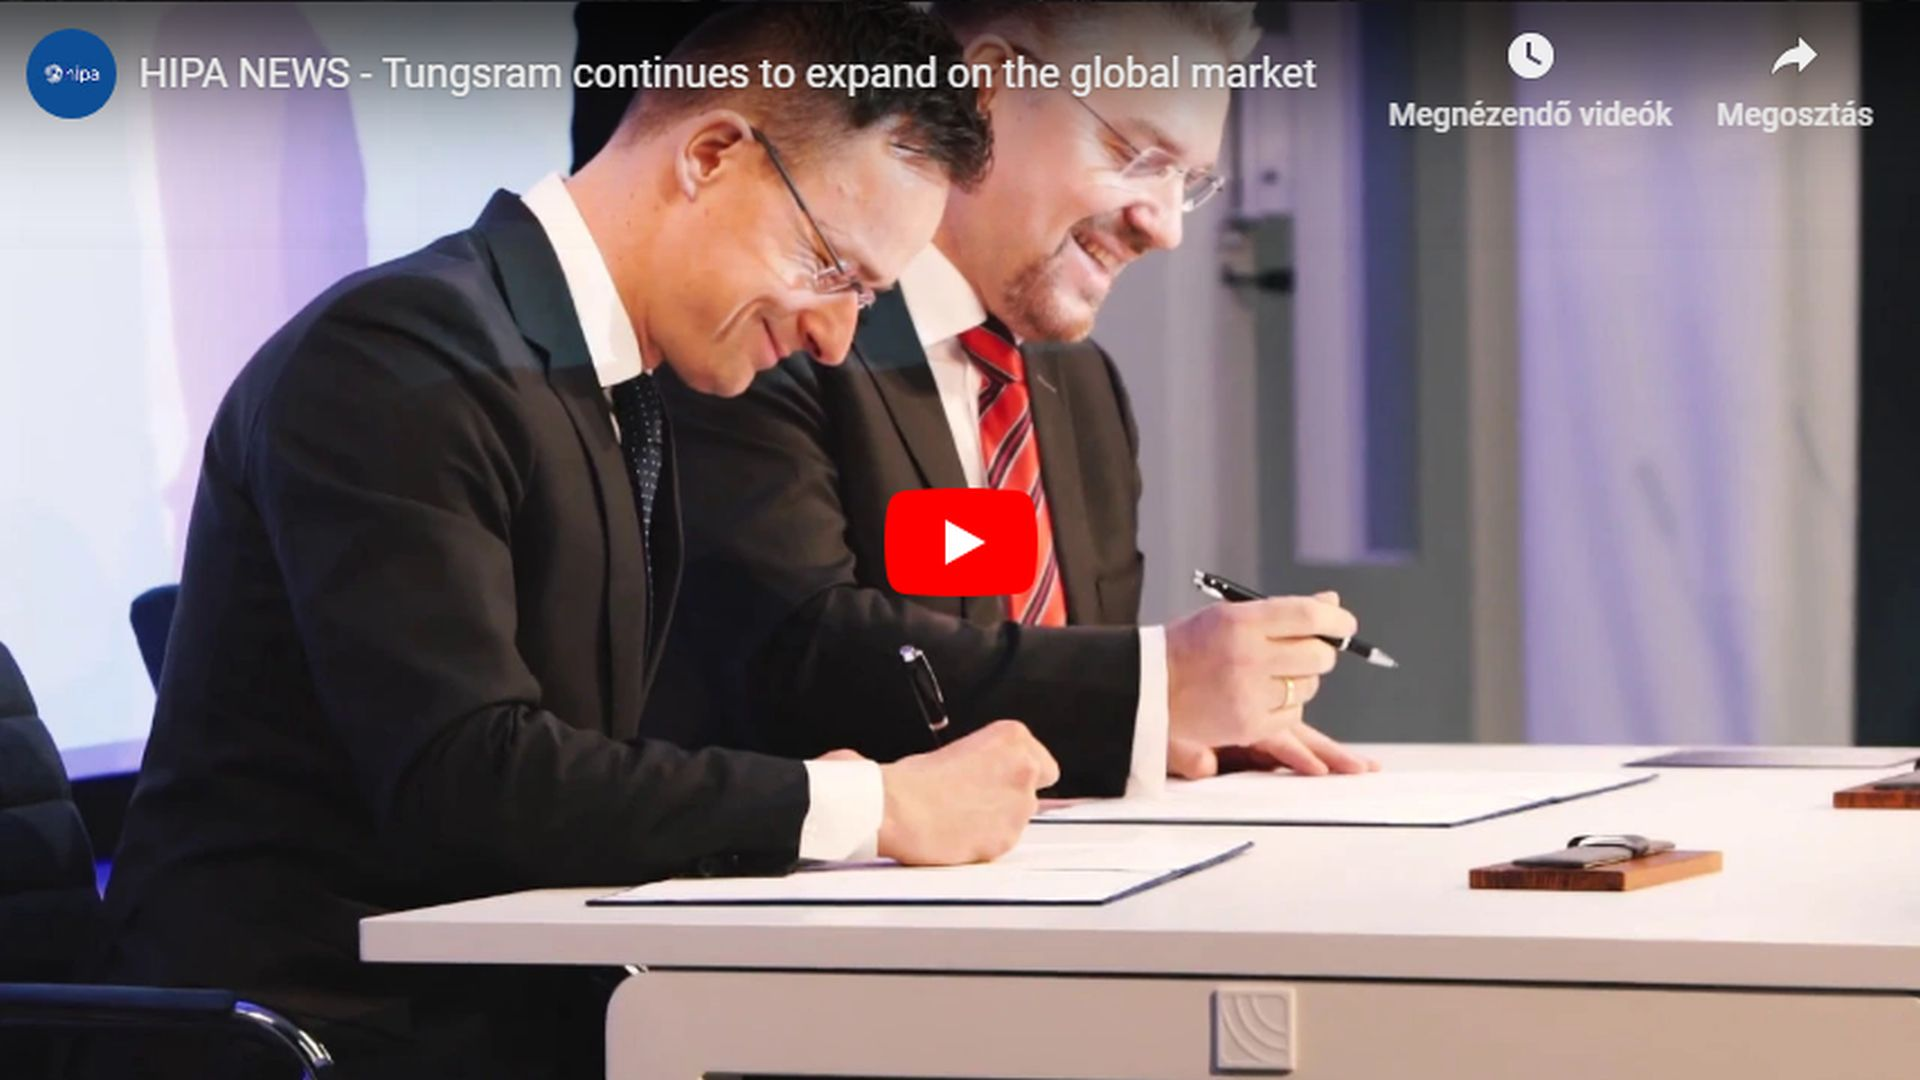 Tungsram to expand further on the global market - VIDEO REPORT